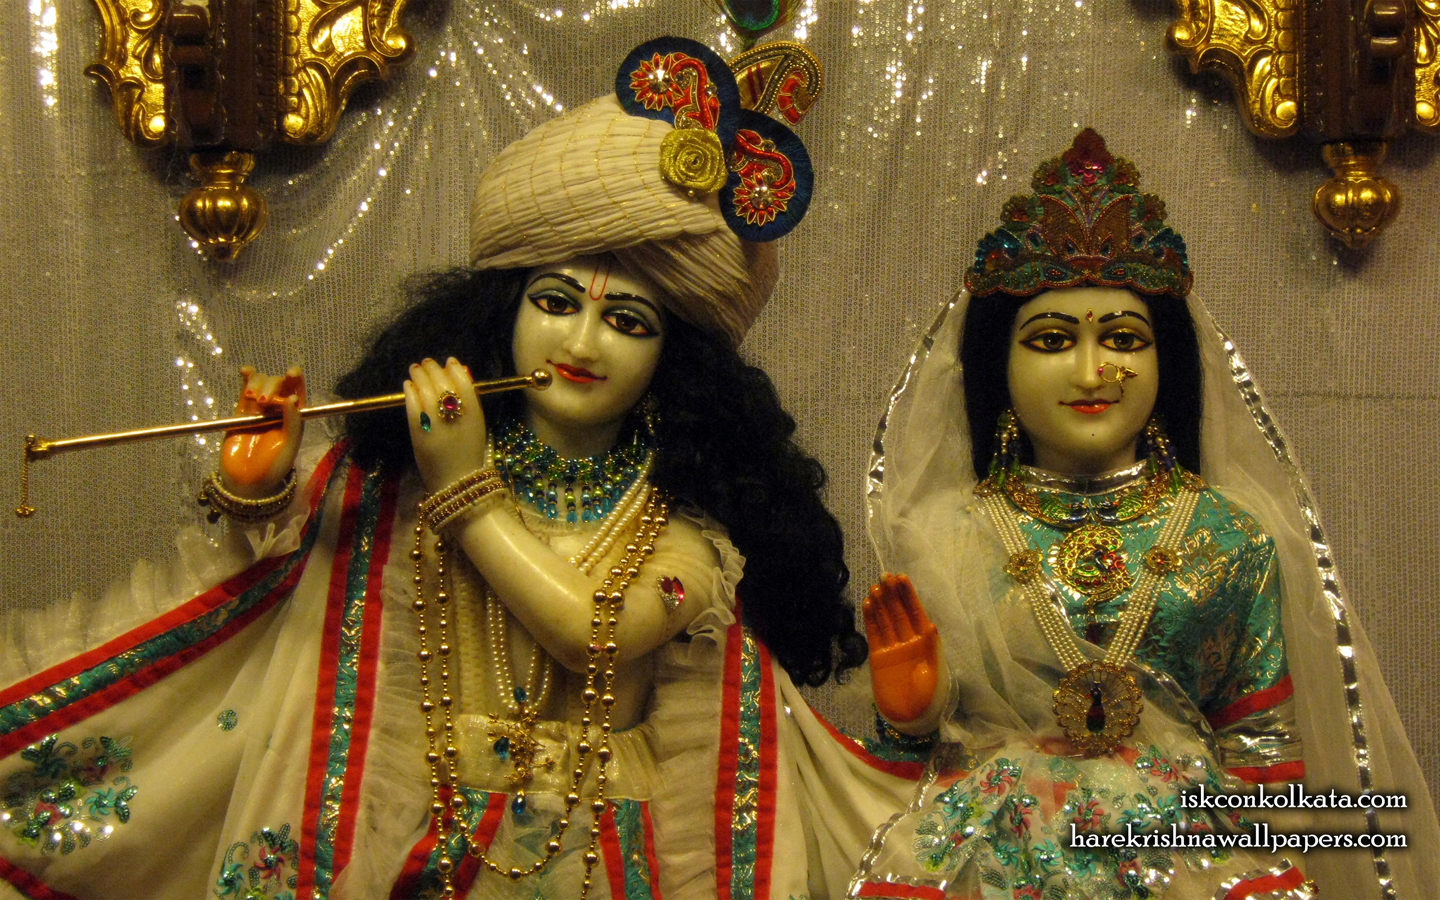 Sri Sri Radha Govinda Close up Wallpaper (003) Size 1440x900 Download